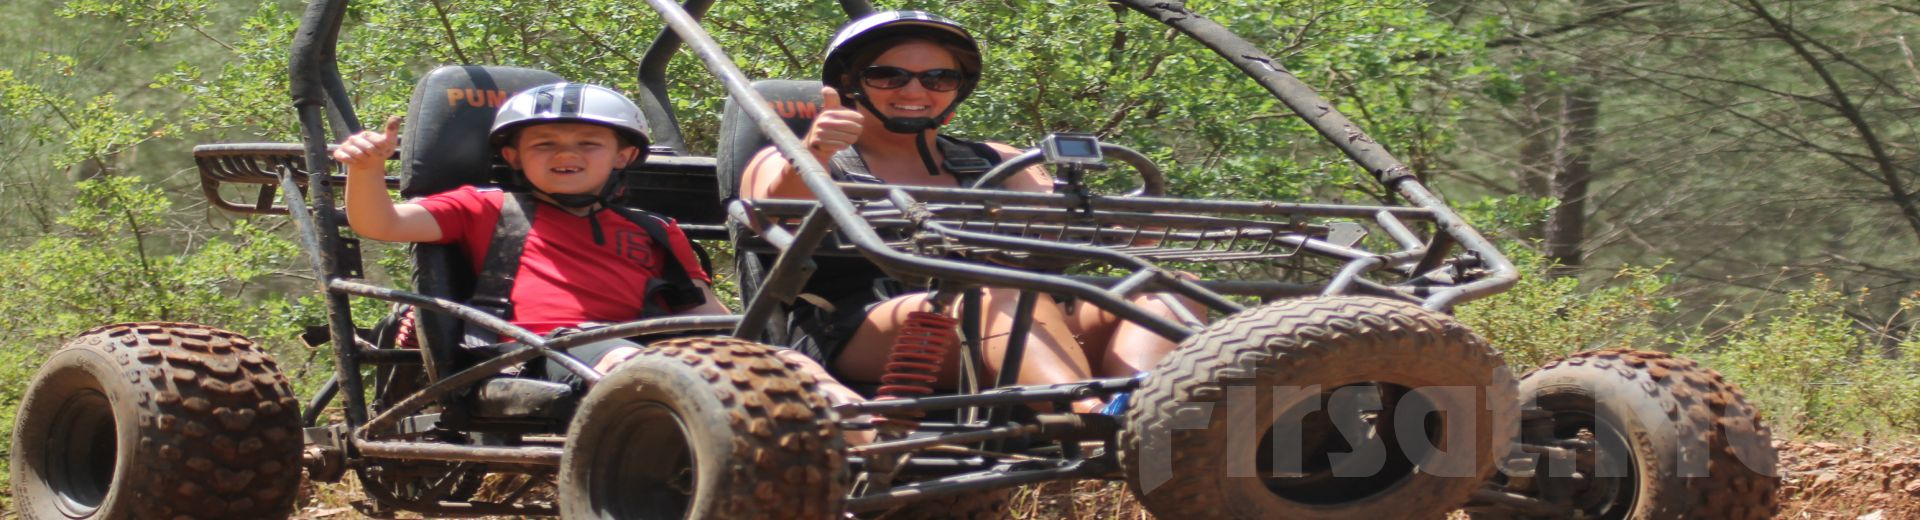 Marmaris'te Adrenalin Dolu Atv (Quad) veya Buggy Safari Turu!